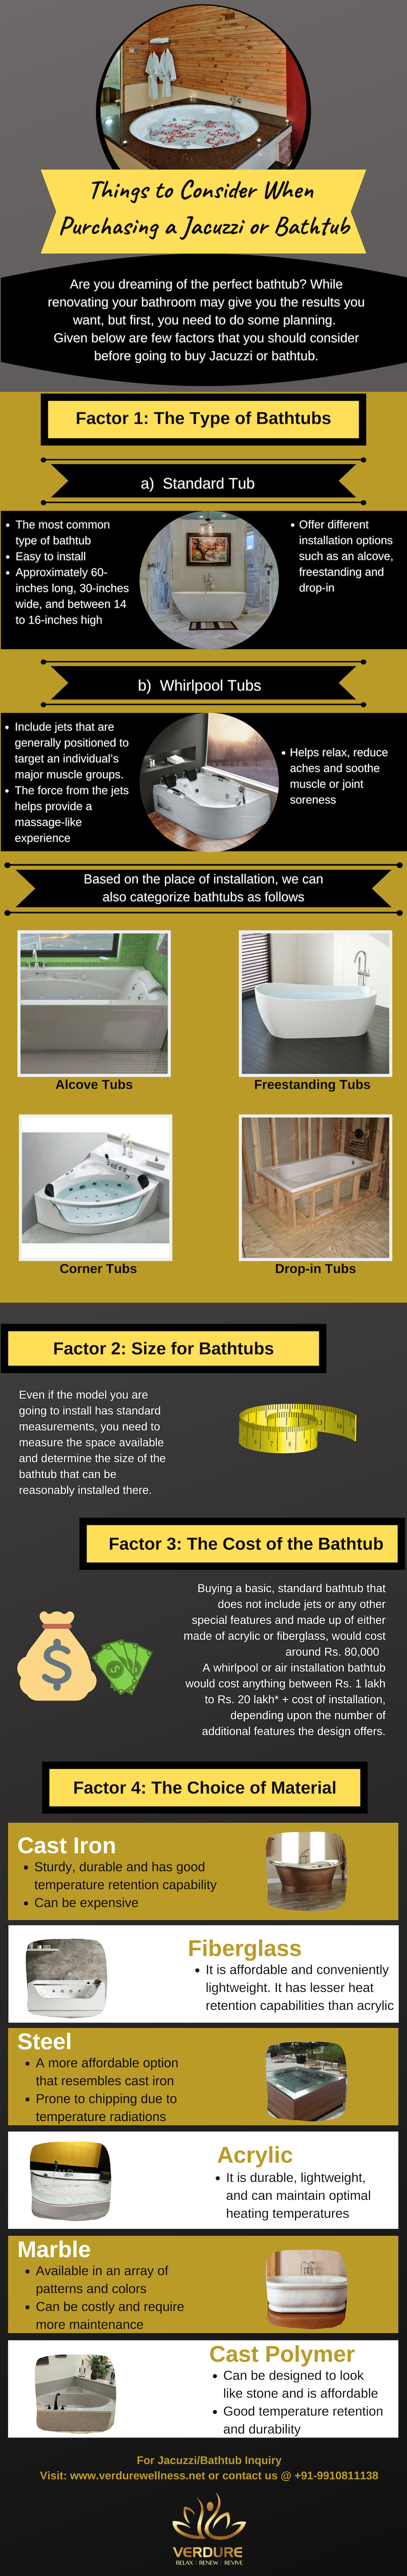 Infographic showing deciding factors for buying the best Jacuzzi or bathtub for your home